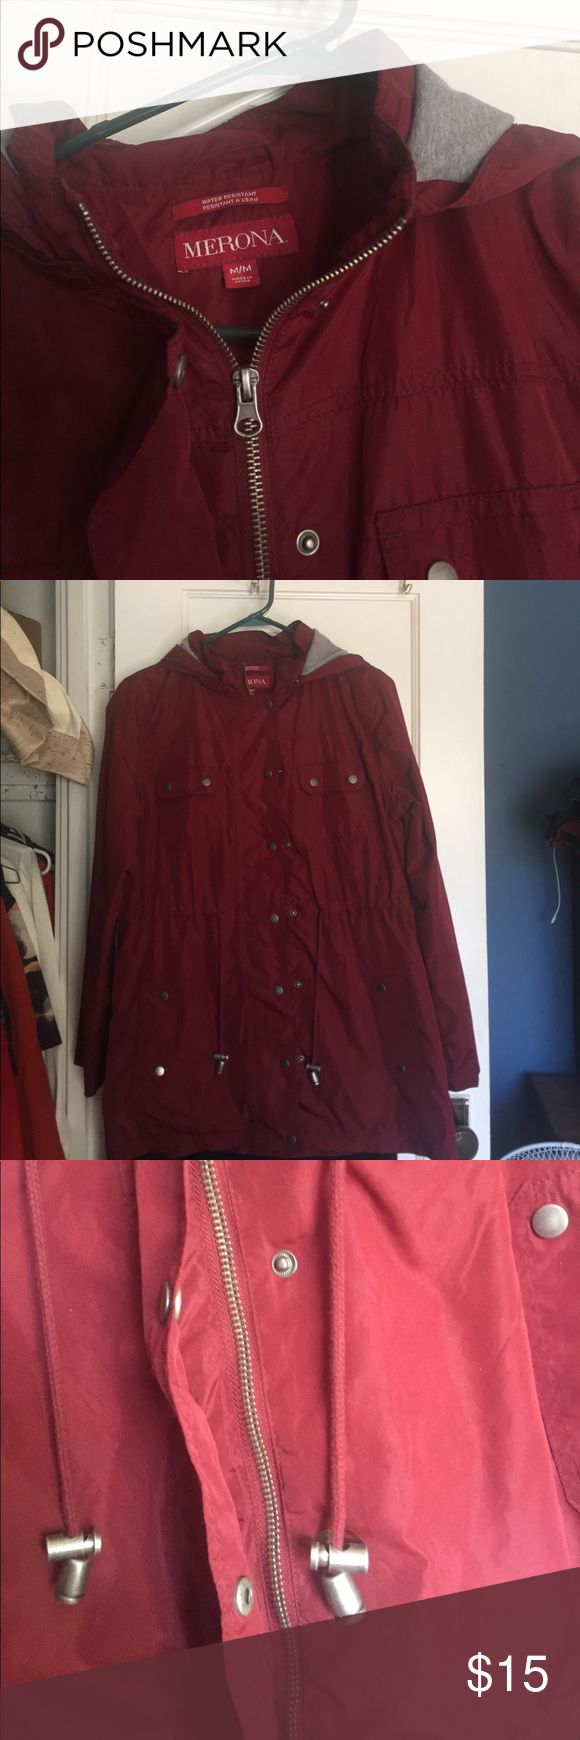 Burgundy lightweight water resistant jacket MAKE AN OFFER! Everything in my closet needs to go by mid-July or it will be donated. Lightweight coat with several pockets. Can cinch in at the waist Merona Jackets & Coats